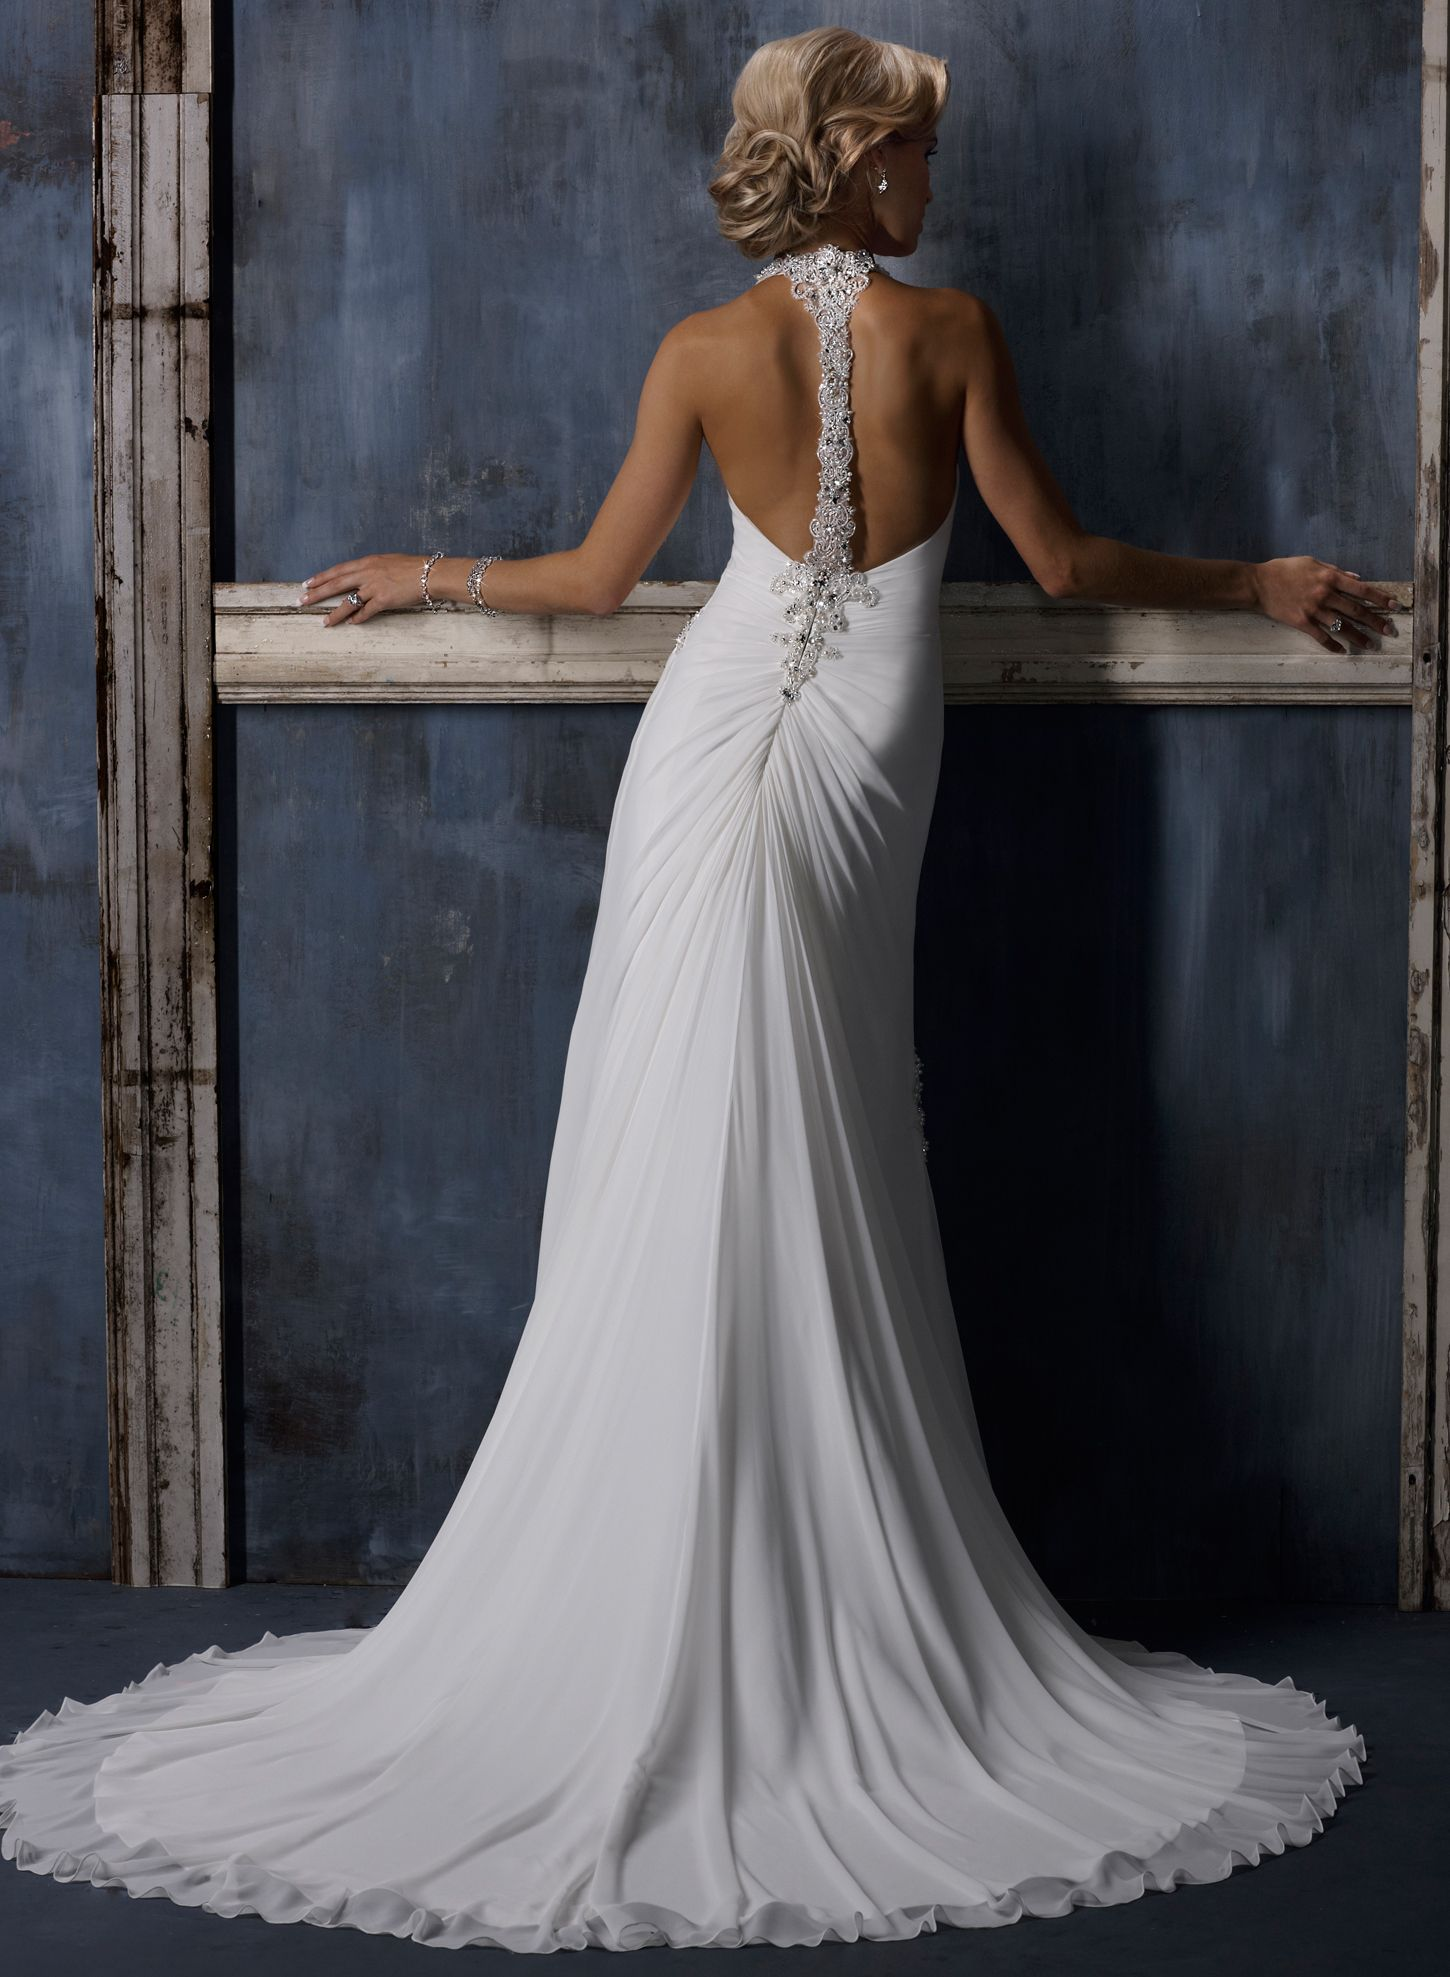 Maggie Sottero Wedding Dresses   Maggie sottero bridal gowns ...